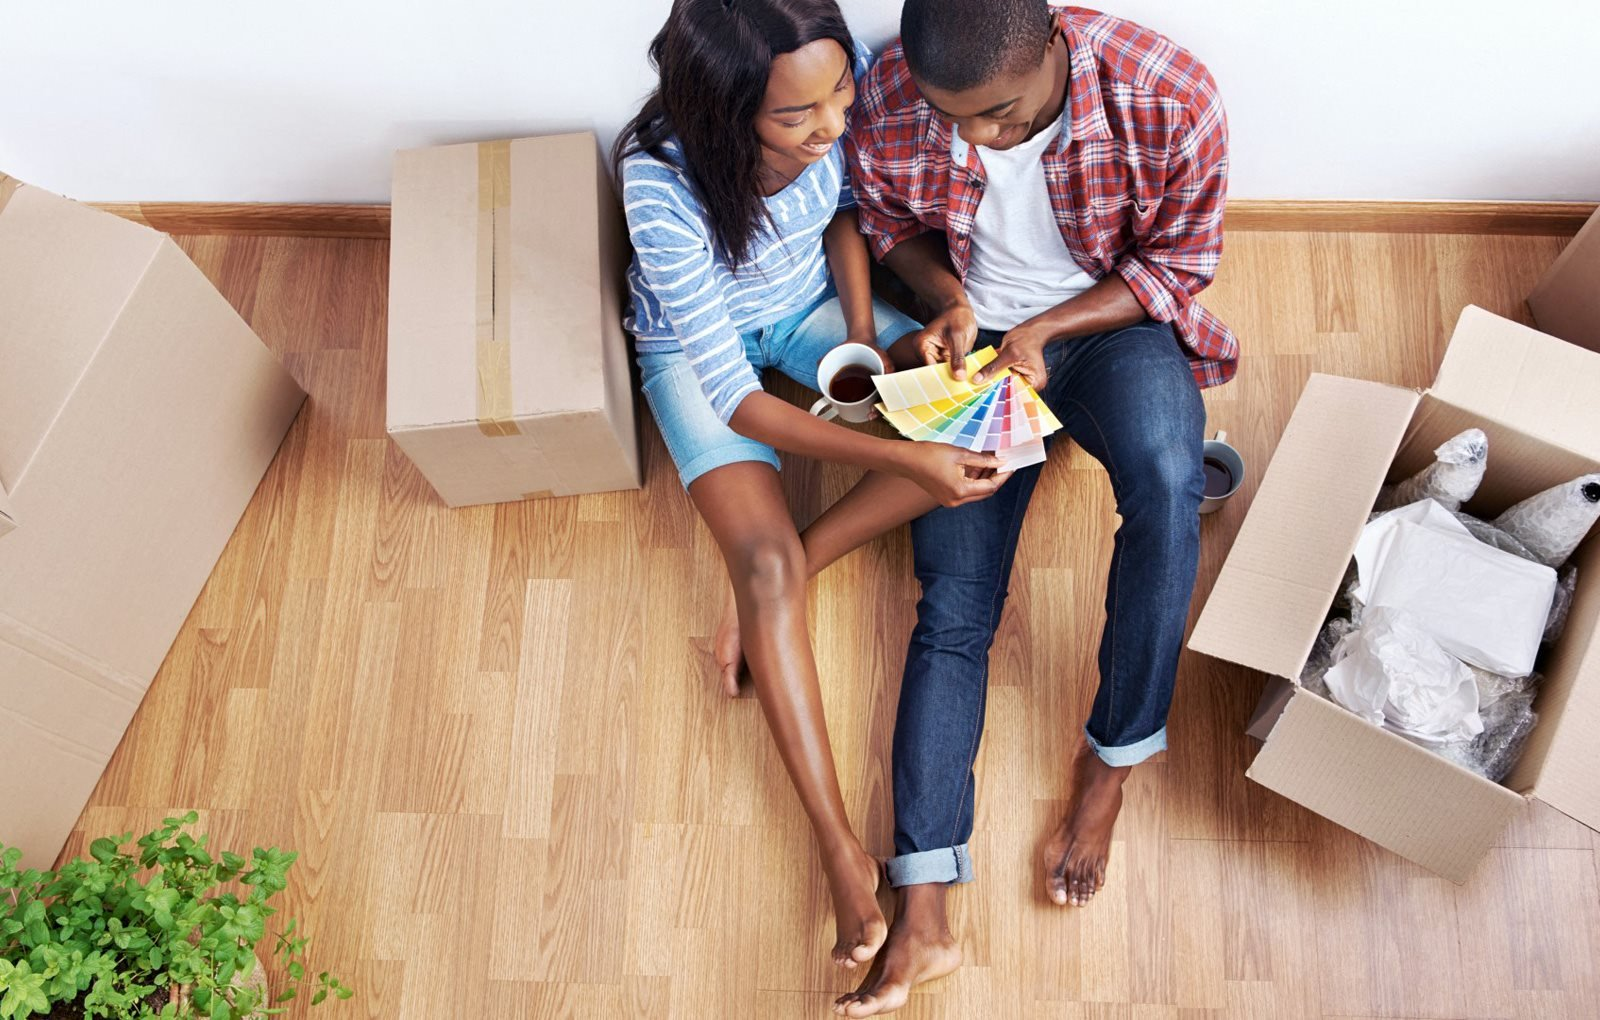 Couple sitting on the ground in their living room eating